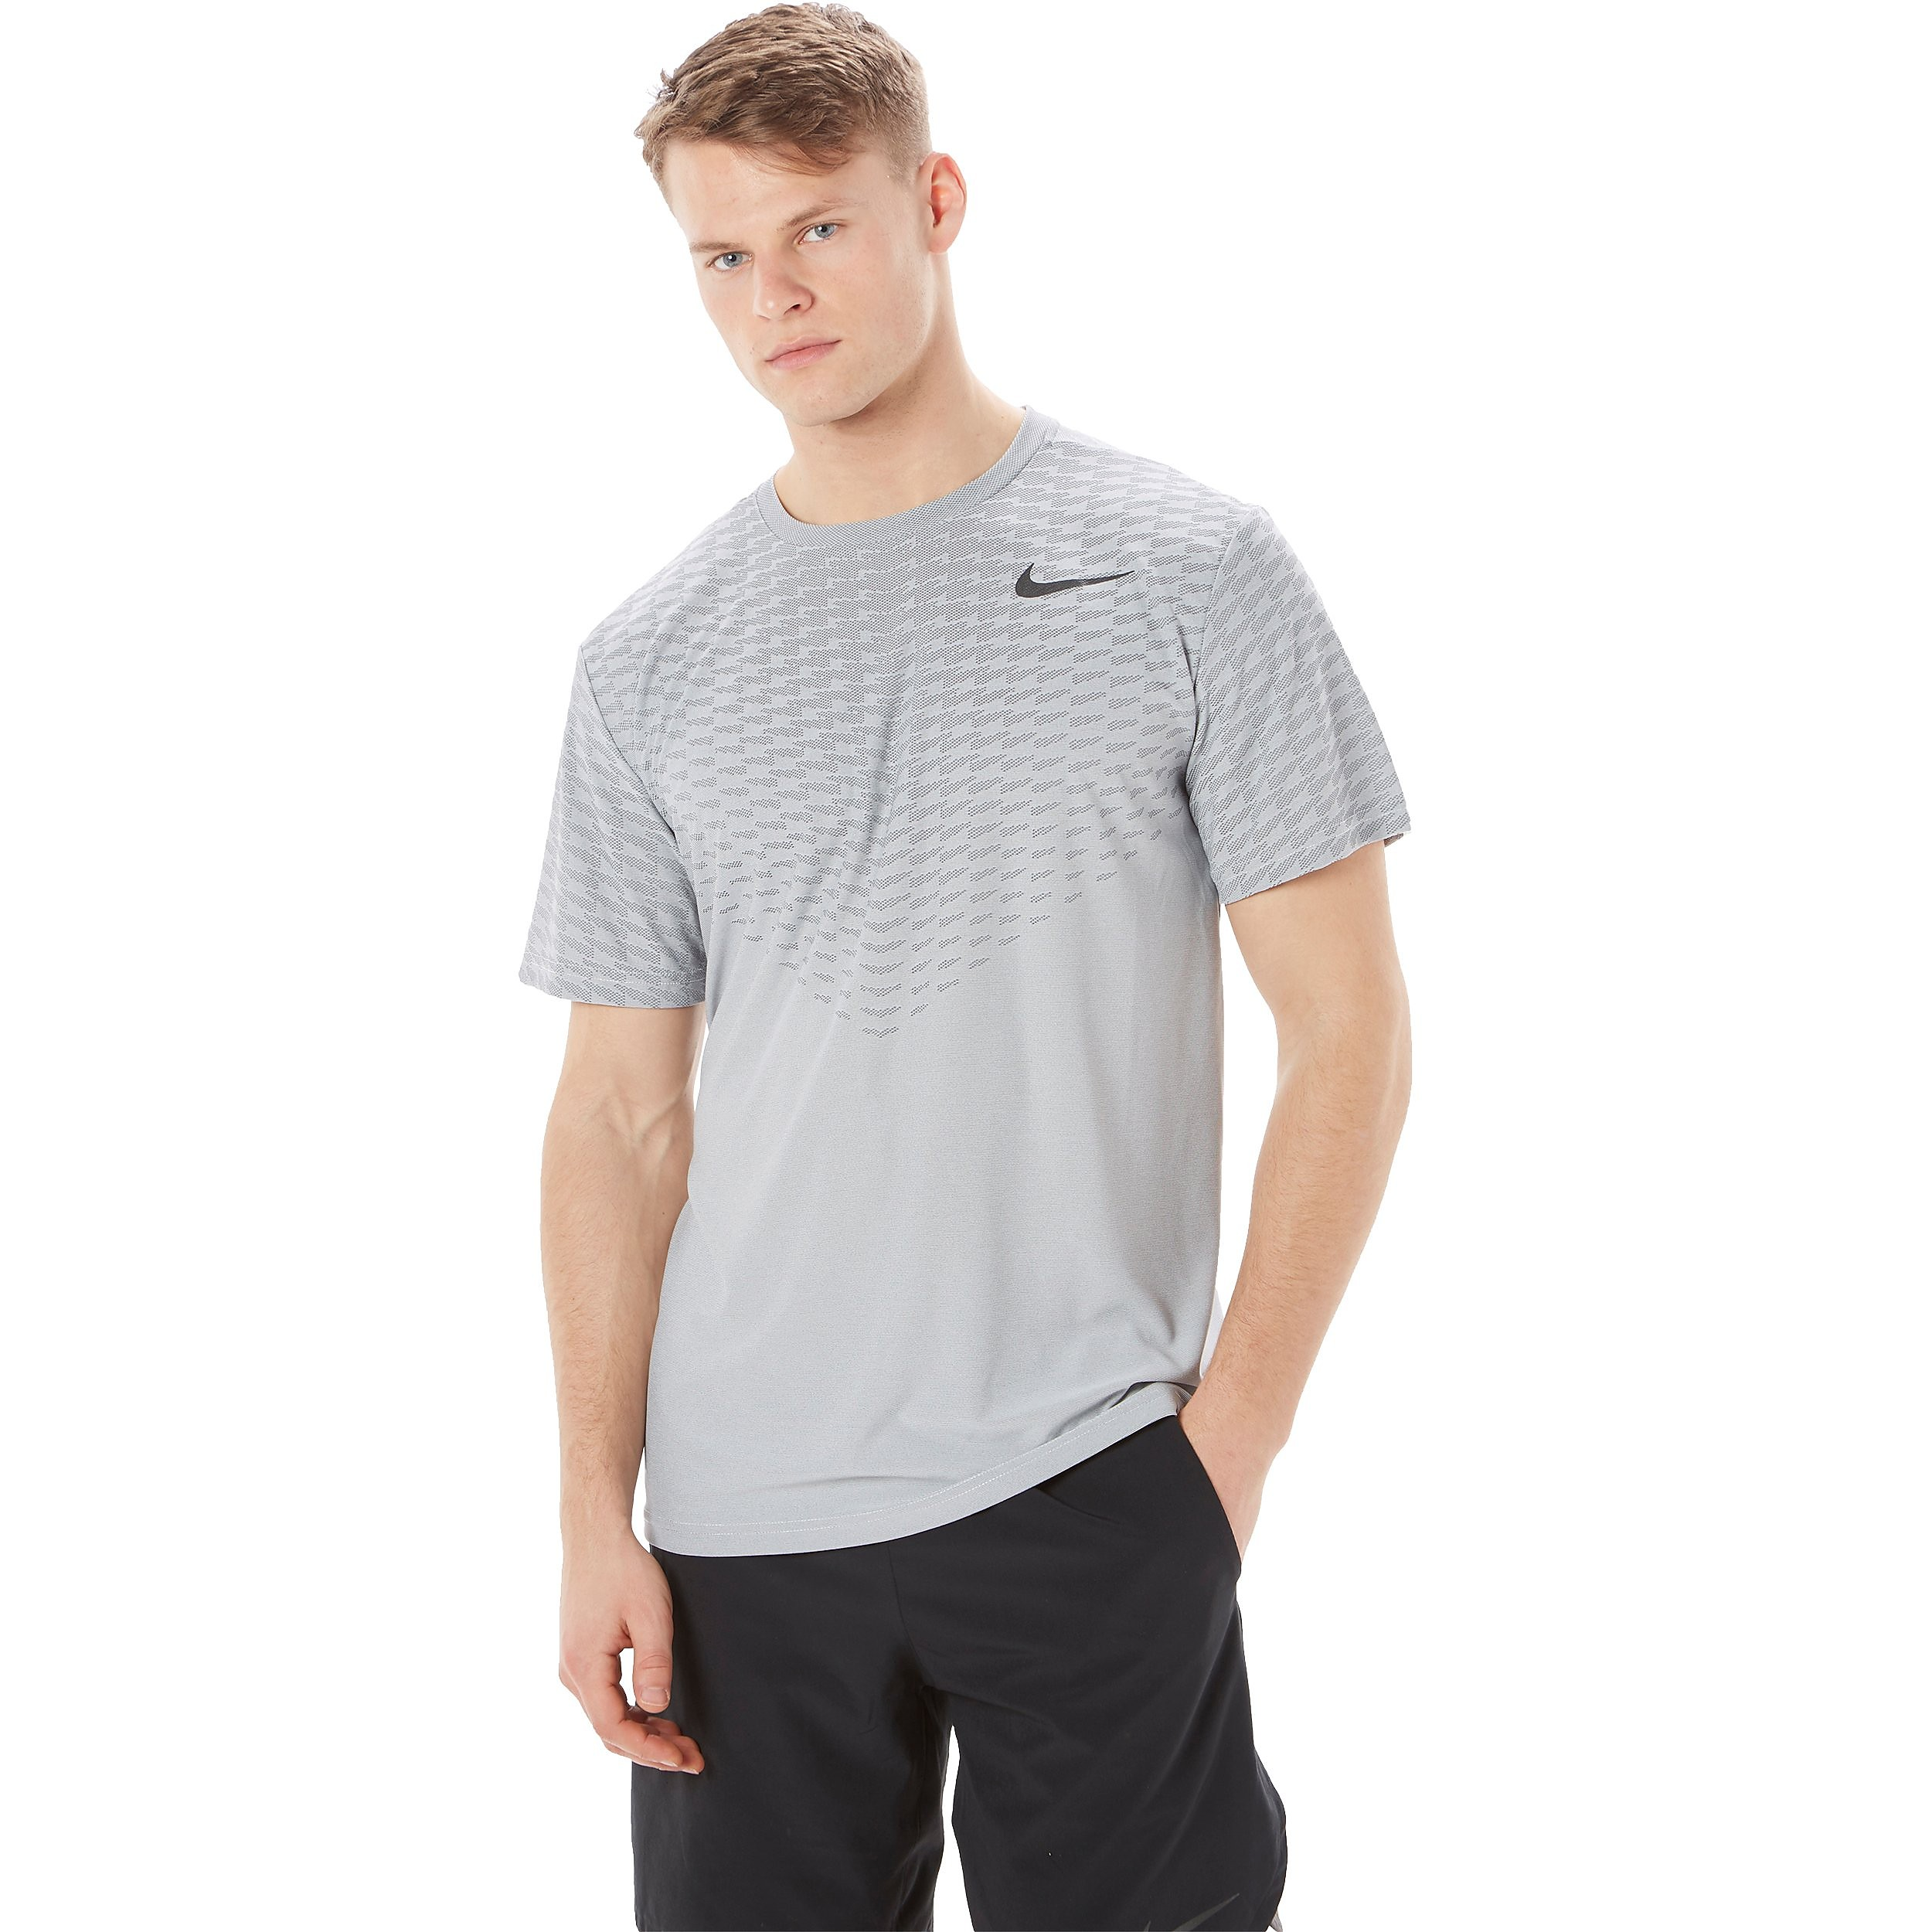 Nike Zonal Cooling Relay Men's Running T-Shirt